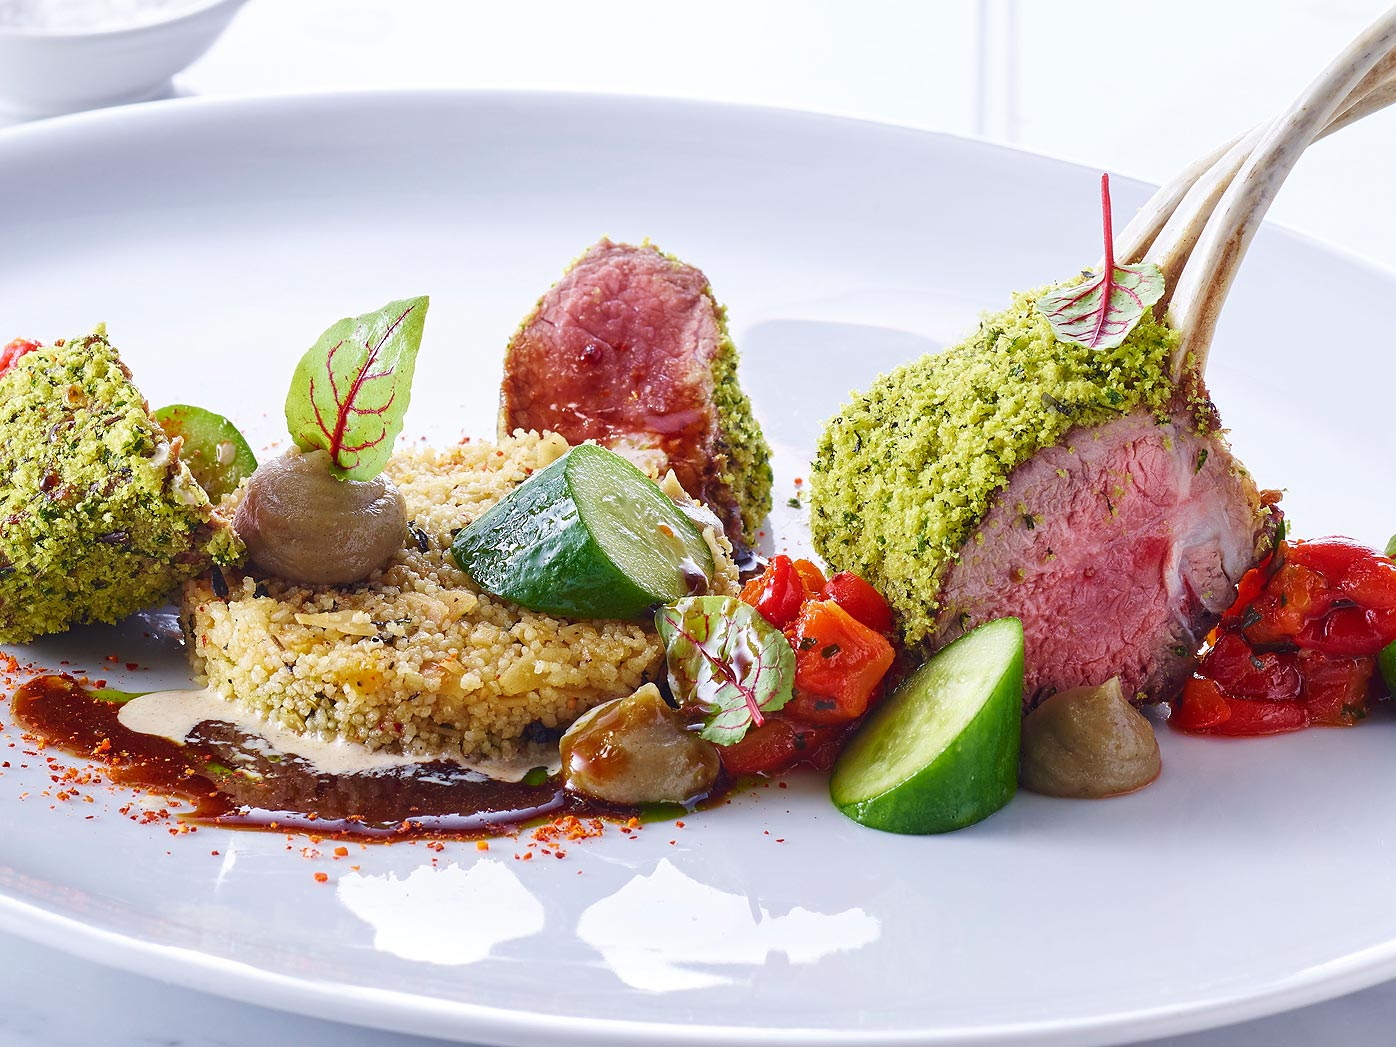 Neil Martin's roasted rack of lamb with charred eggplant puree